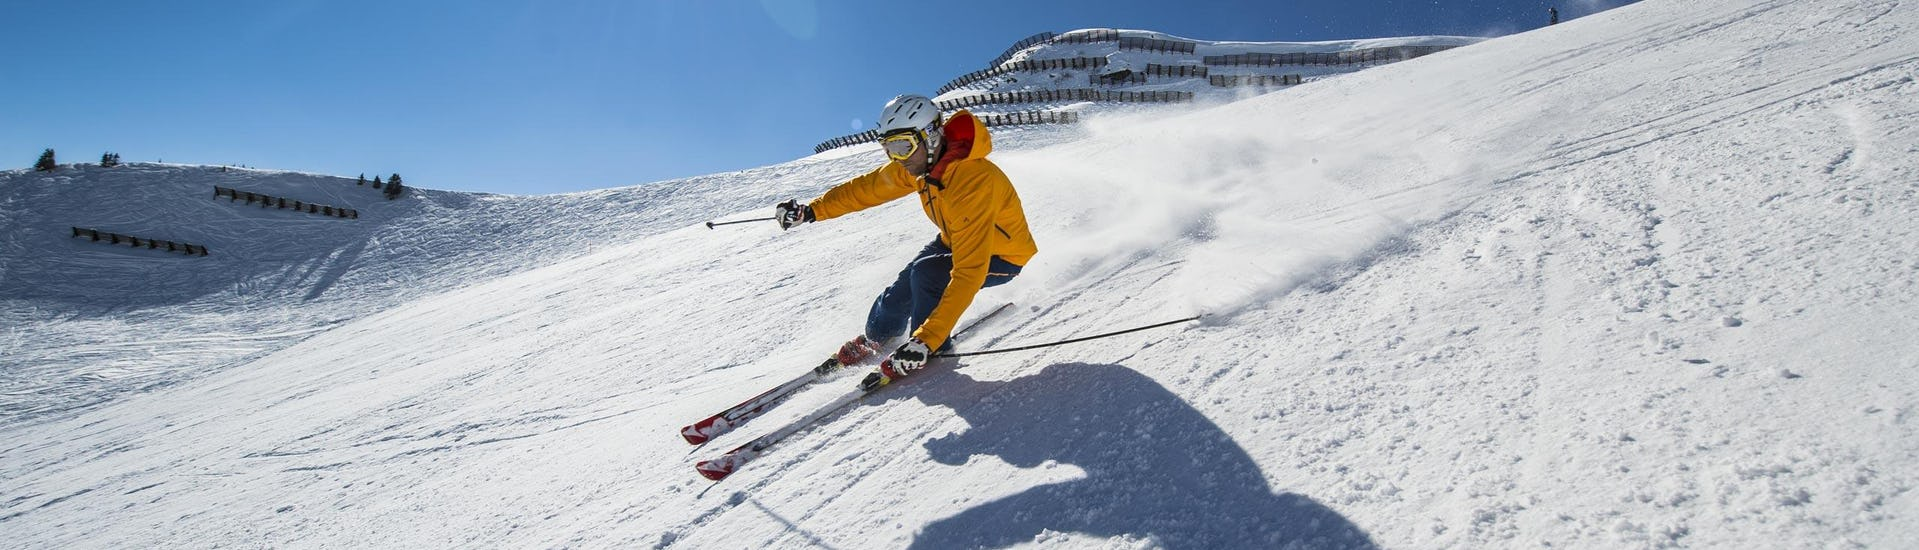 Private lessons with Kurt for skiers: A skier is skiing down a sunny ski slope while participating in an activity offered by Kurt Ladner.